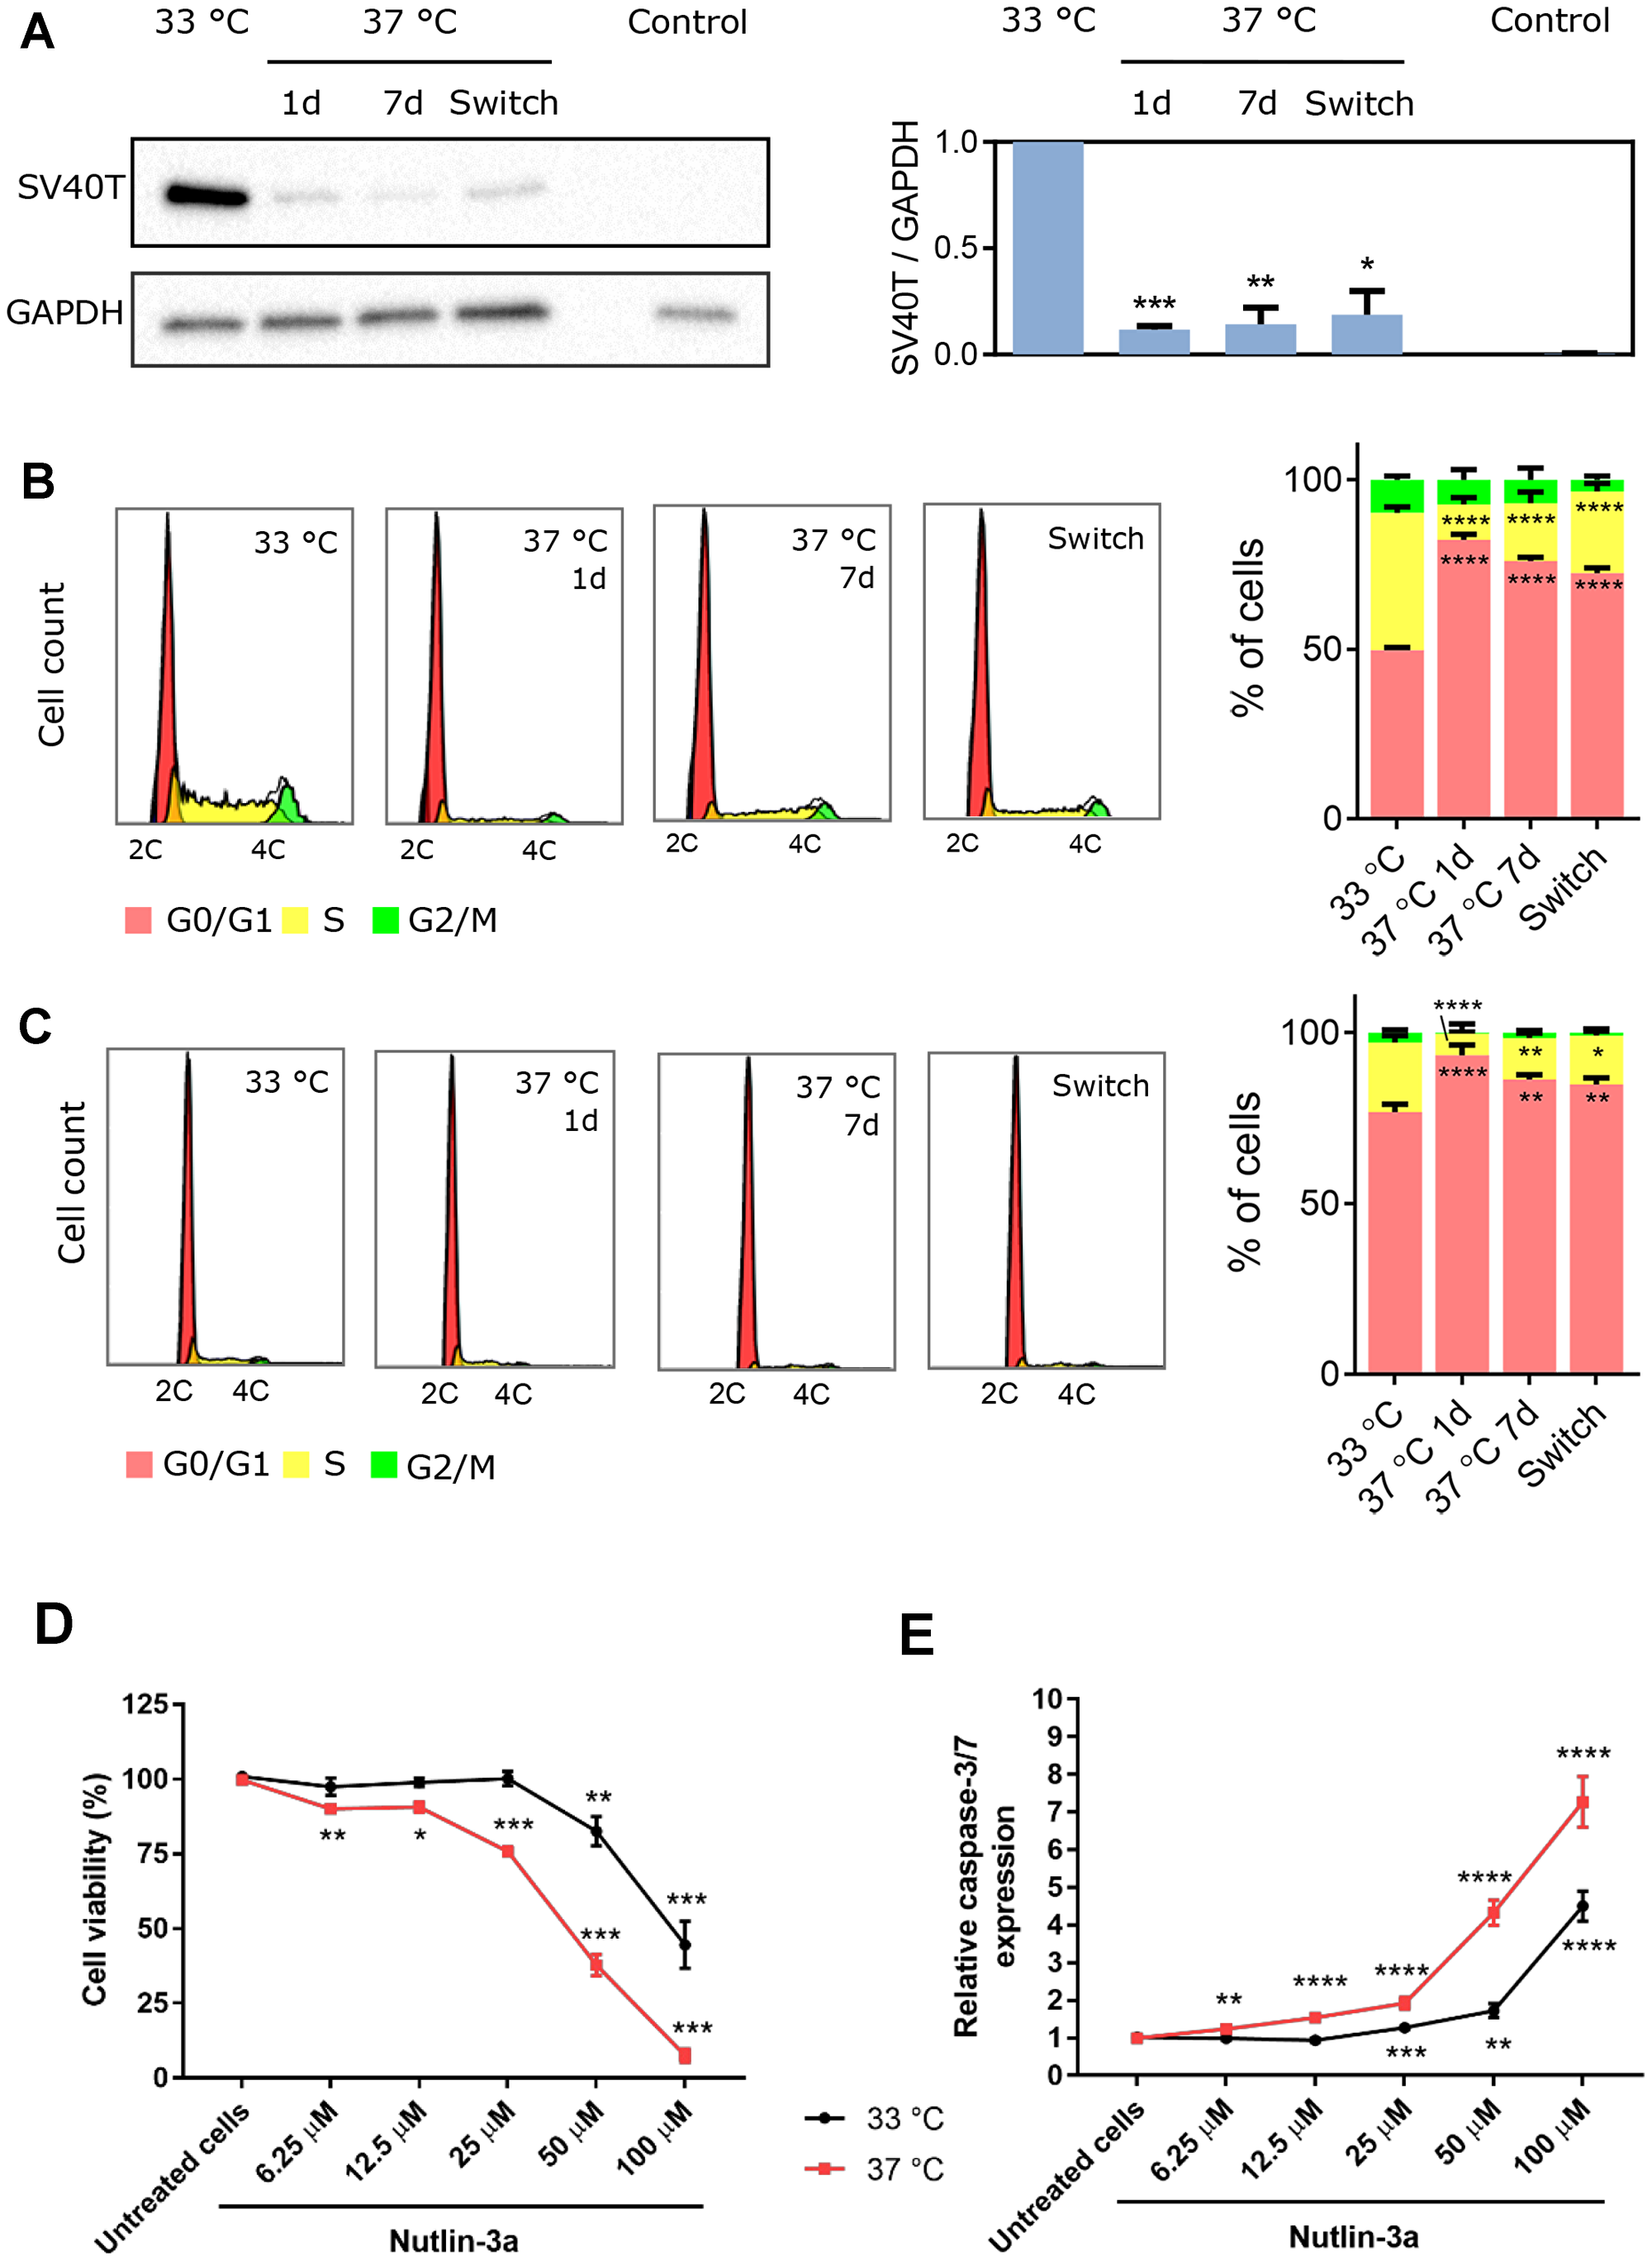 Temperature-dependent effect of SV40T expression on ciPTEC-OAT1 proliferation and apoptosis-sensitivity.